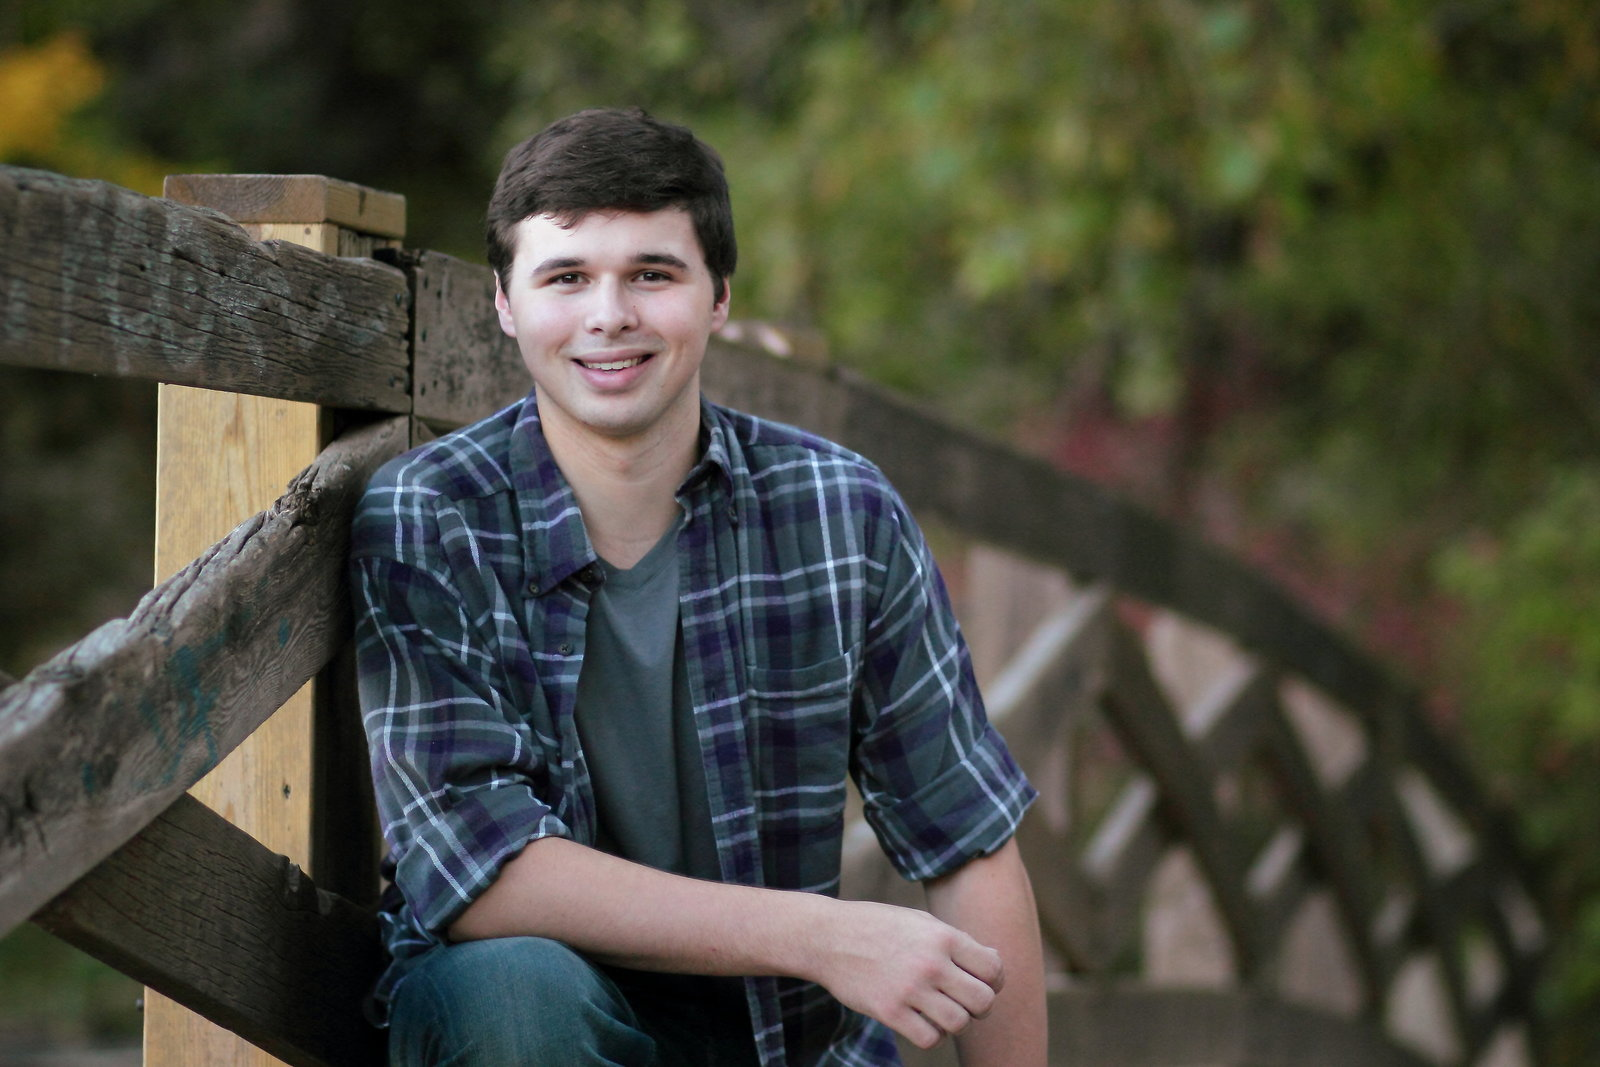 Senior portraits of a guy on wooden bridge